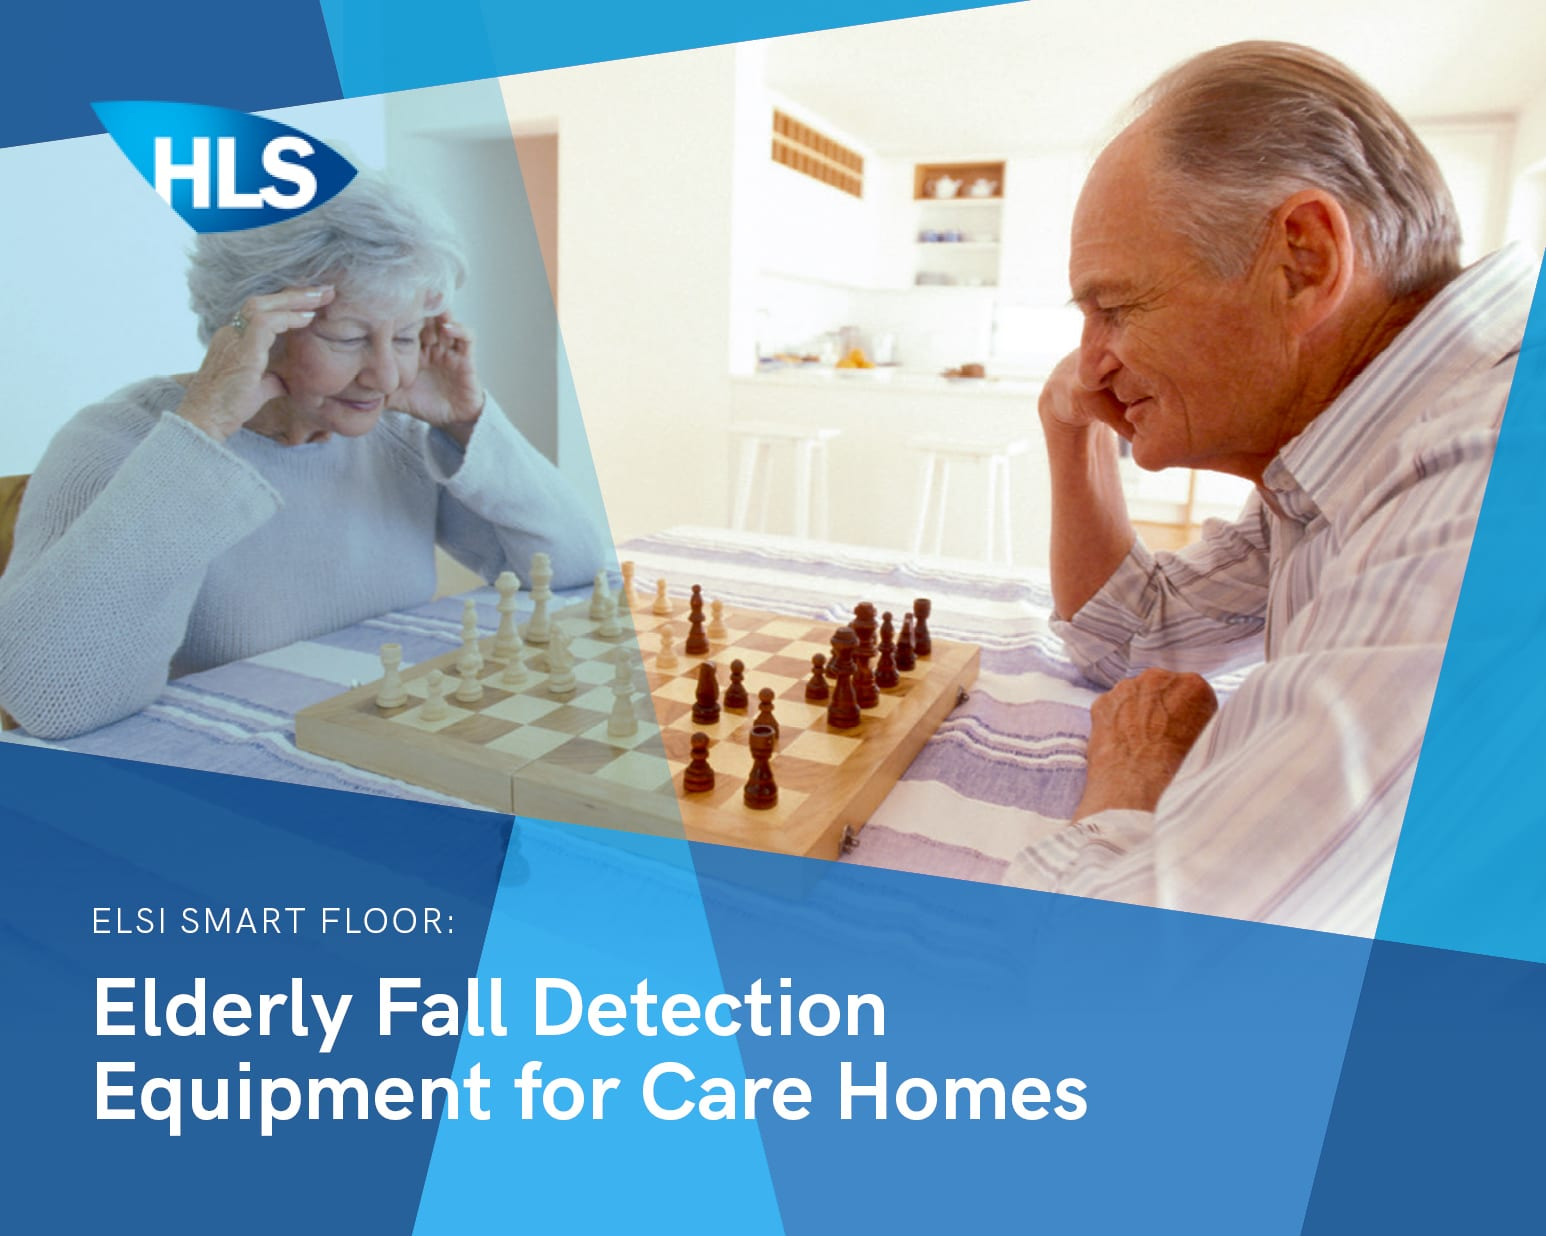 Elderly Fall Detection Equipment for Care Homes - Elsi Smart Floor